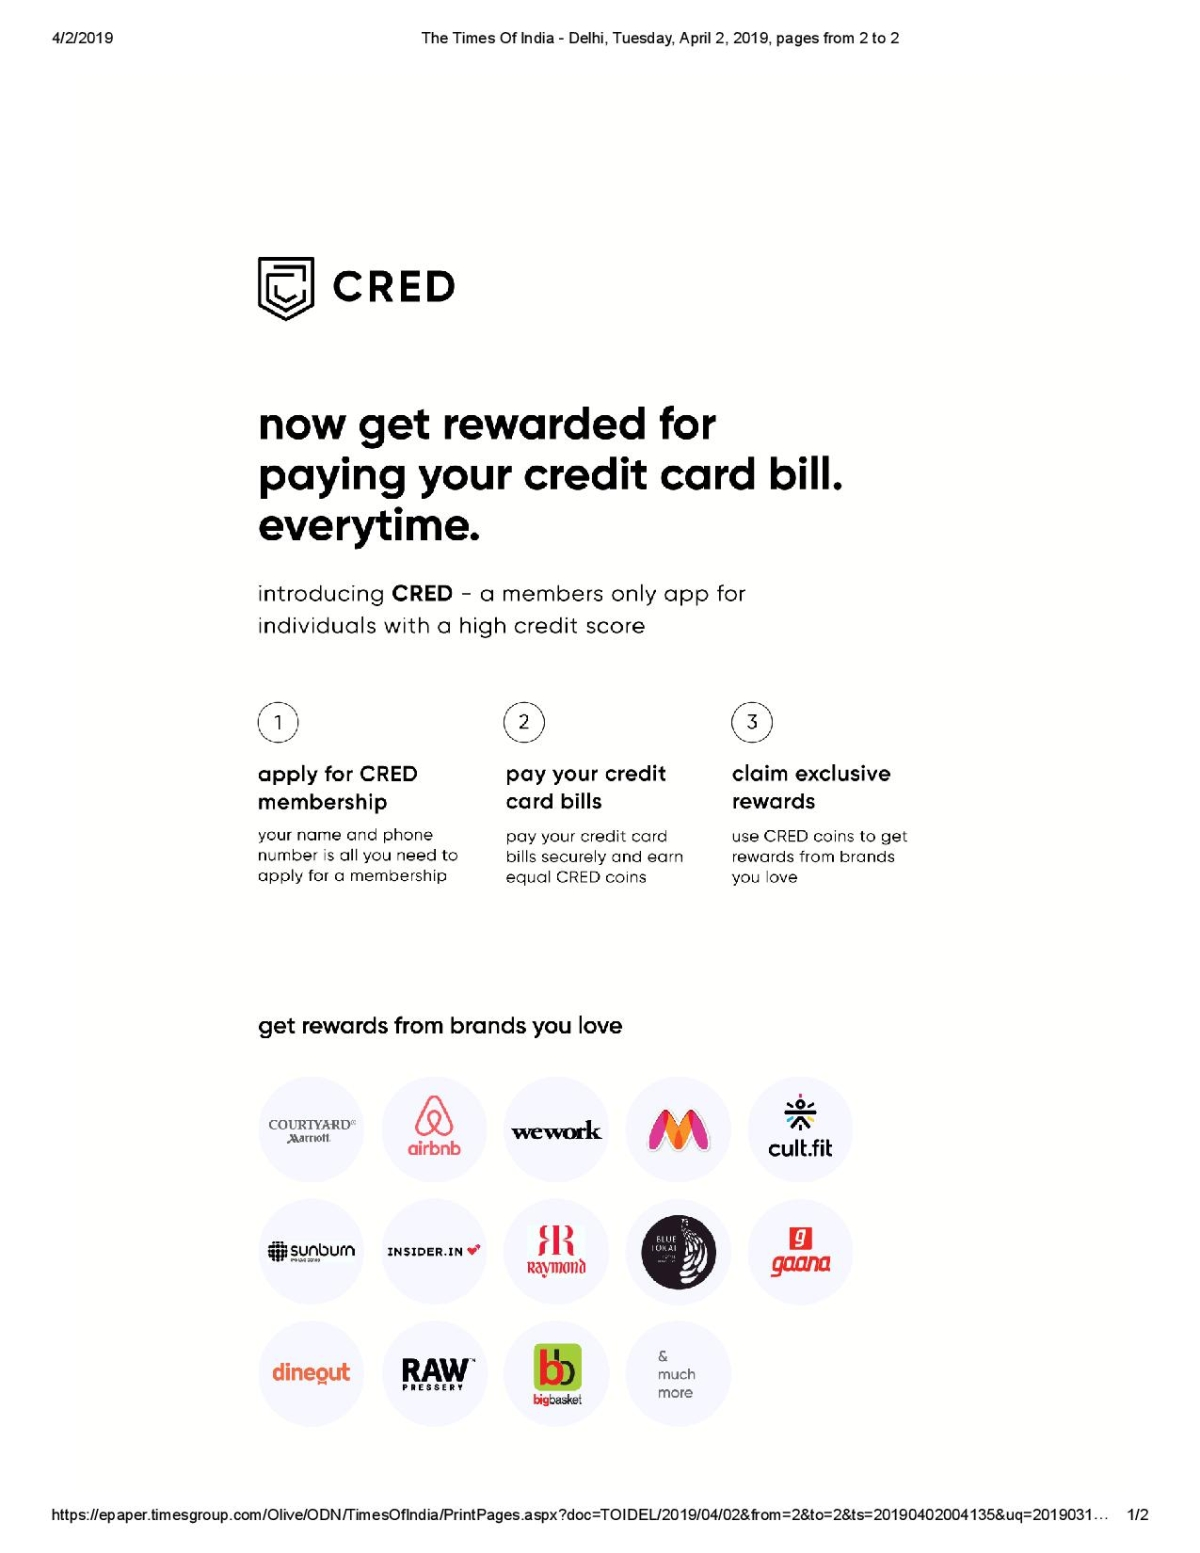 Cred's full page ad in TOI